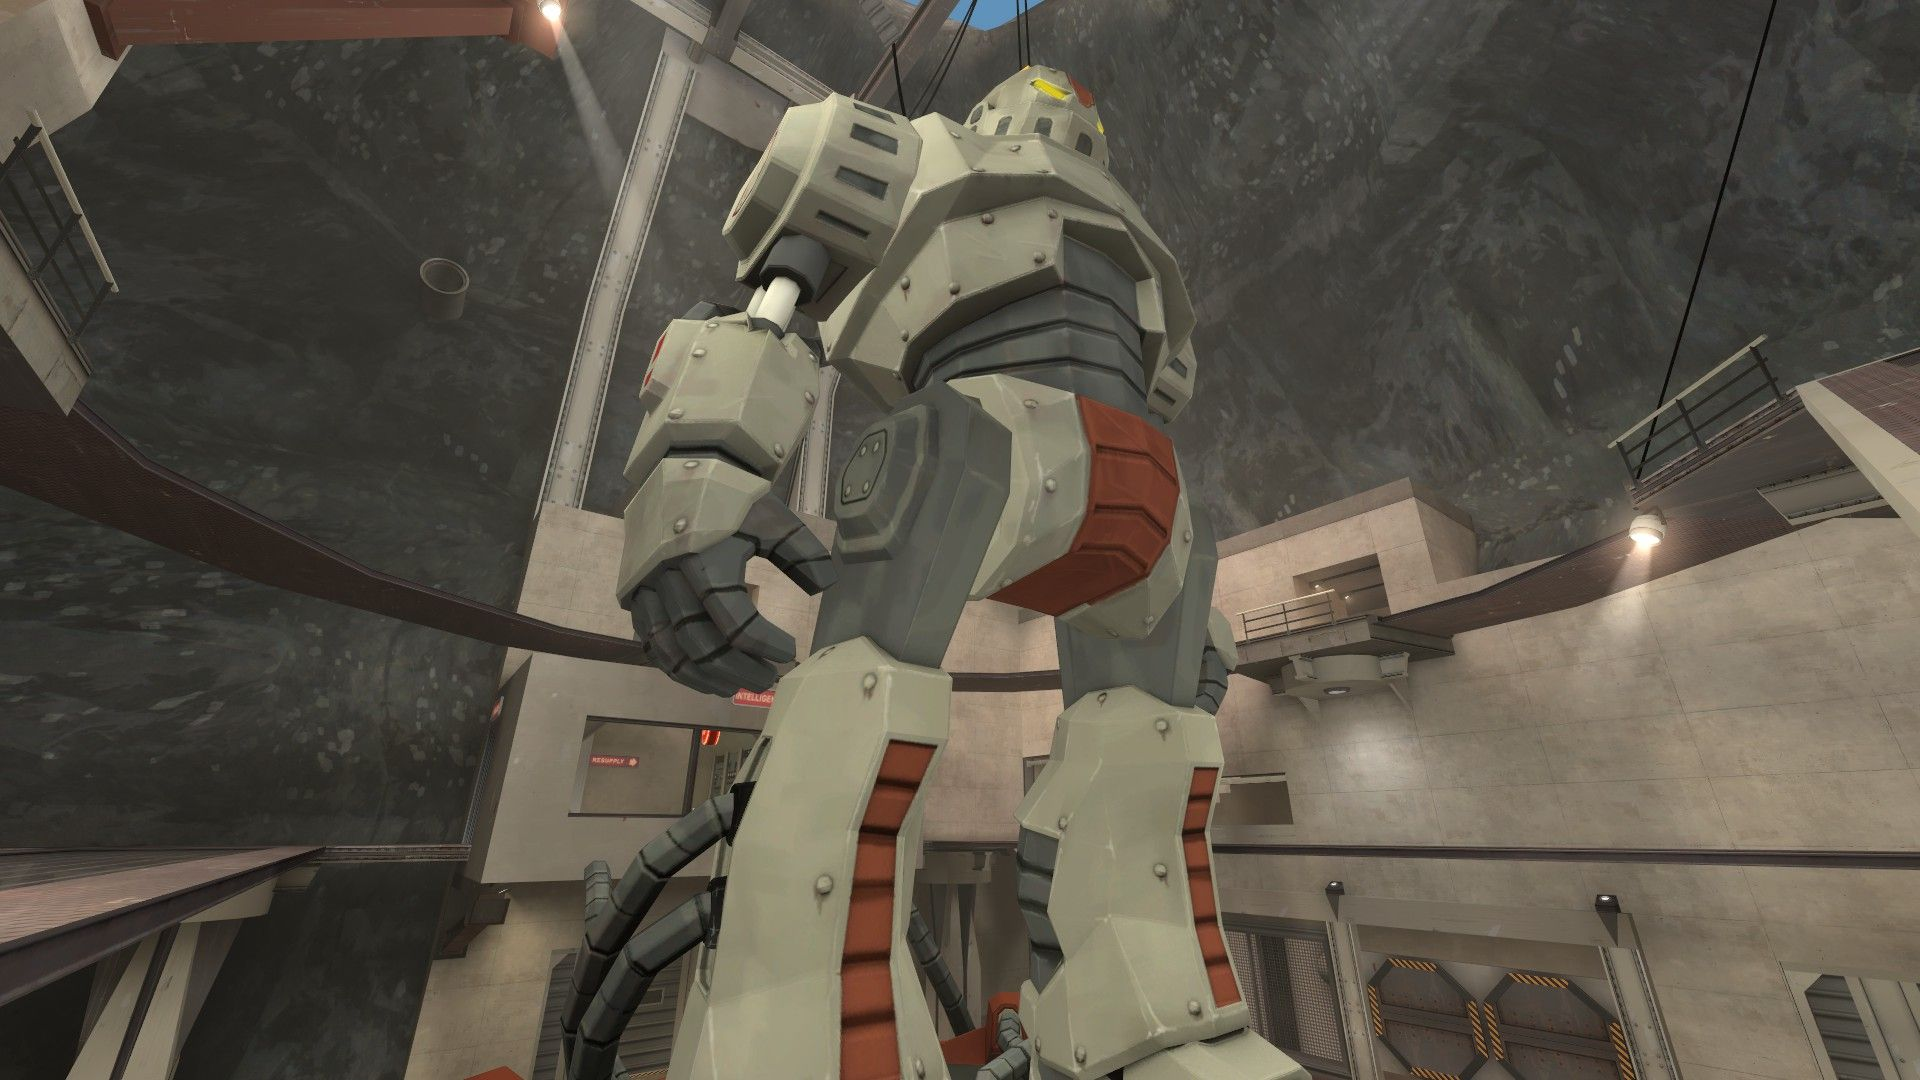 Red team is better because they have a freaking giant robot